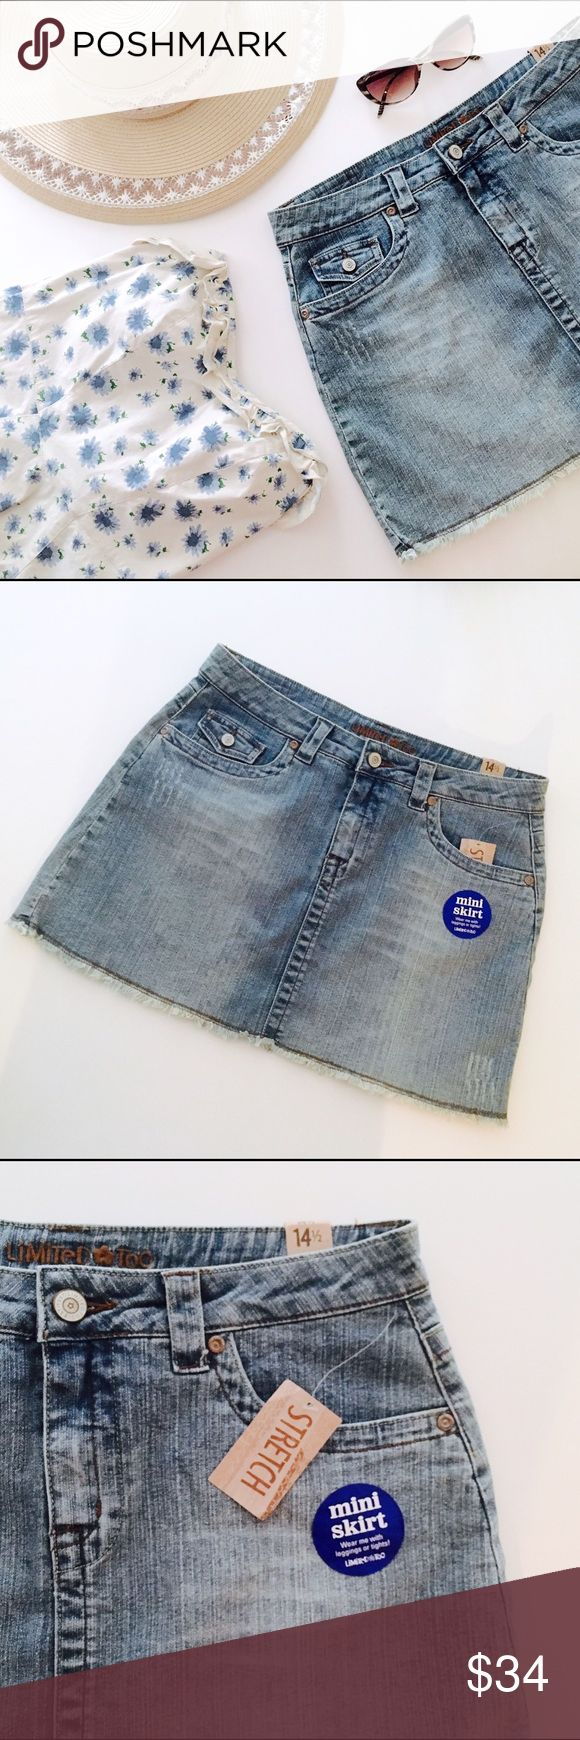 """🍍Frayed Denim Mini Skirt Sky blue vintage wash denim mini skirt. Slight distressing, camel colored stitching and frayed hem. Flap pockets, belt loops, button & zip-closure. Provides stretch • Girls' size 14.5, fits more like a size 16. Could also fit juniors' size 3.  Wear with: Halter top, sun hat and ghillie sandals for off-duty bathing beauty glamor🍍  - 30"""" waist - 5.5"""" x 6"""" pockets - 14"""" length total  *Label is Limited Too (remember them?) Listed as Gap for exposure. GAP Bottoms Skirts"""